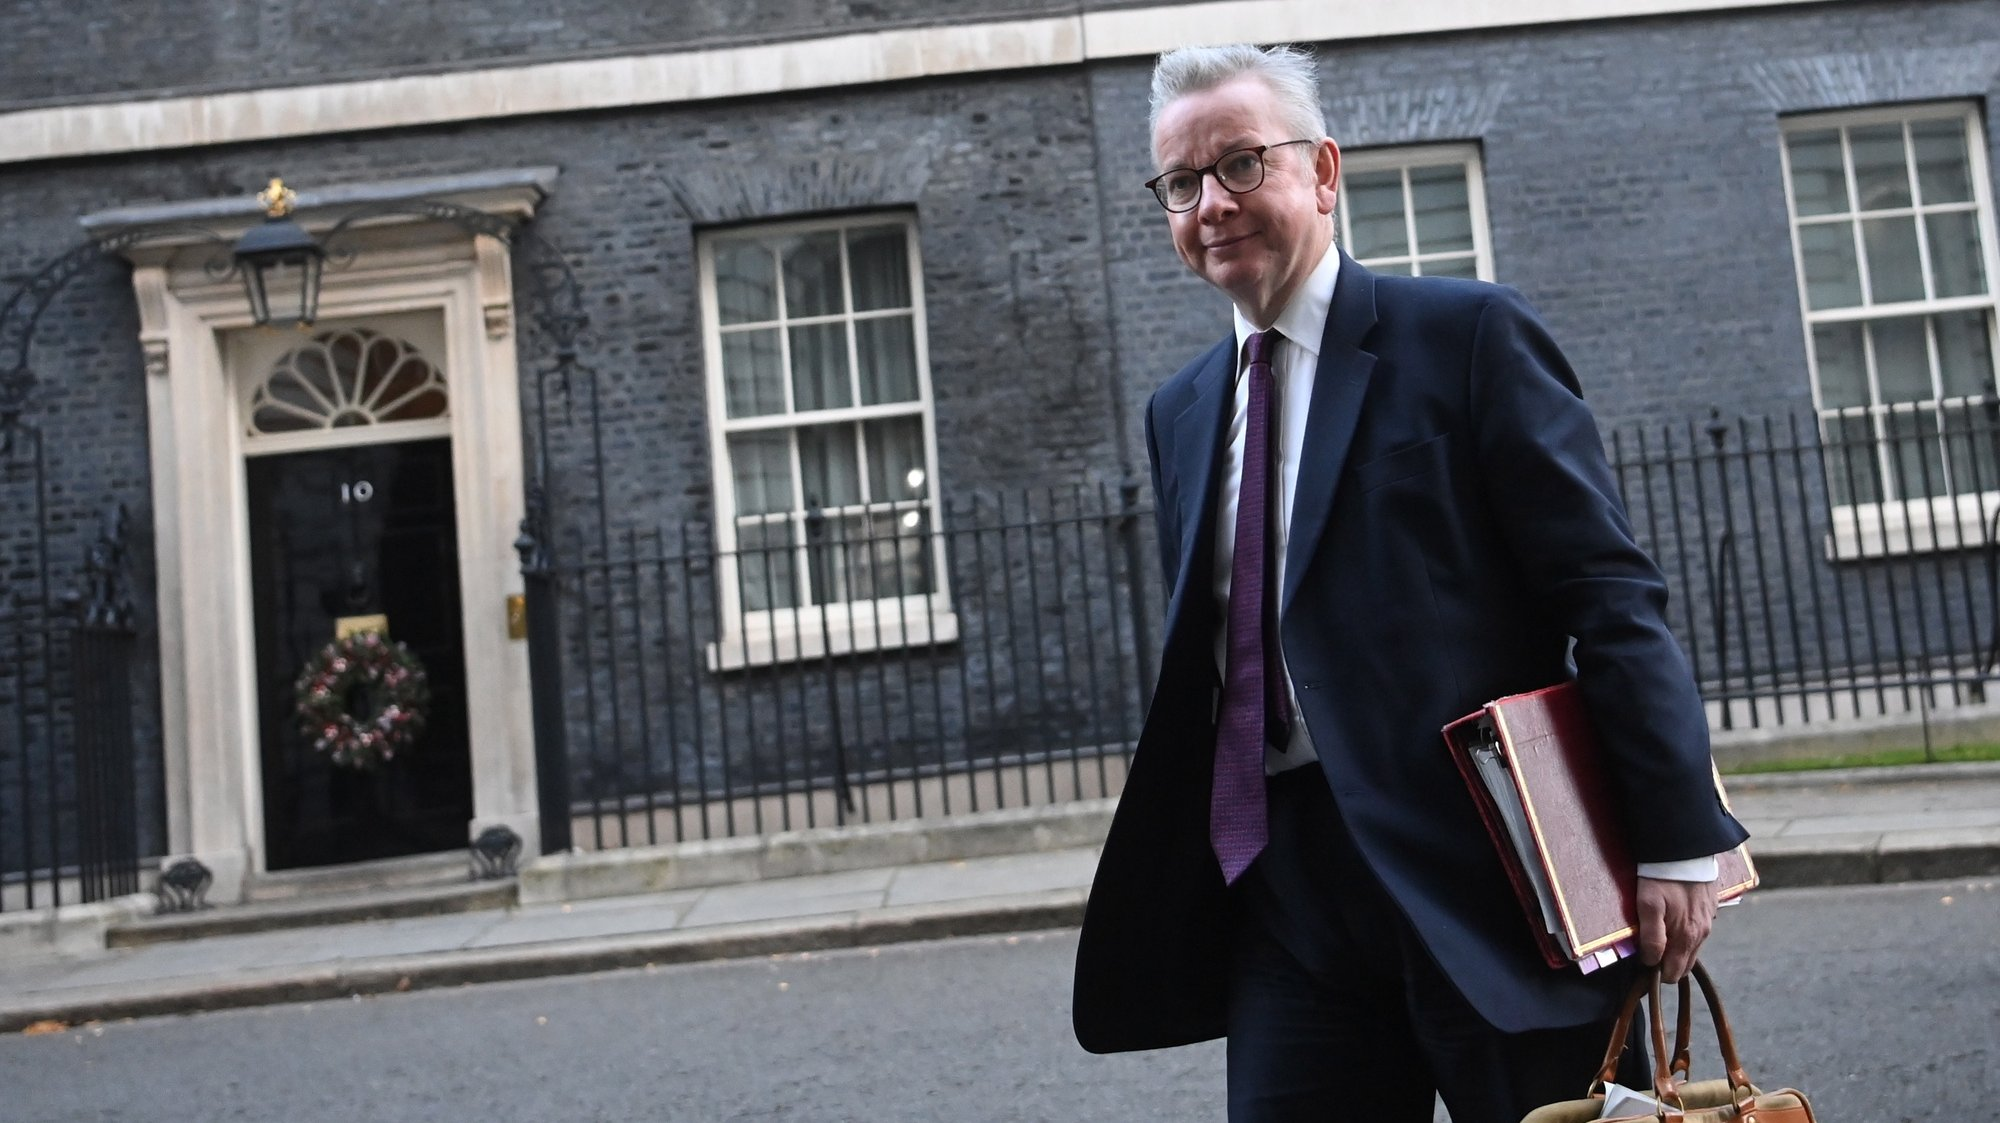 epa08854284 Britain's Chancellor of the Duchy of Lancaster Michael Gove arrives to attend a cabinet meeting in London, Britain 01 December 2020. A second UK national lockdown is due to on 02 December 2020.  EPA/NEIL HALL